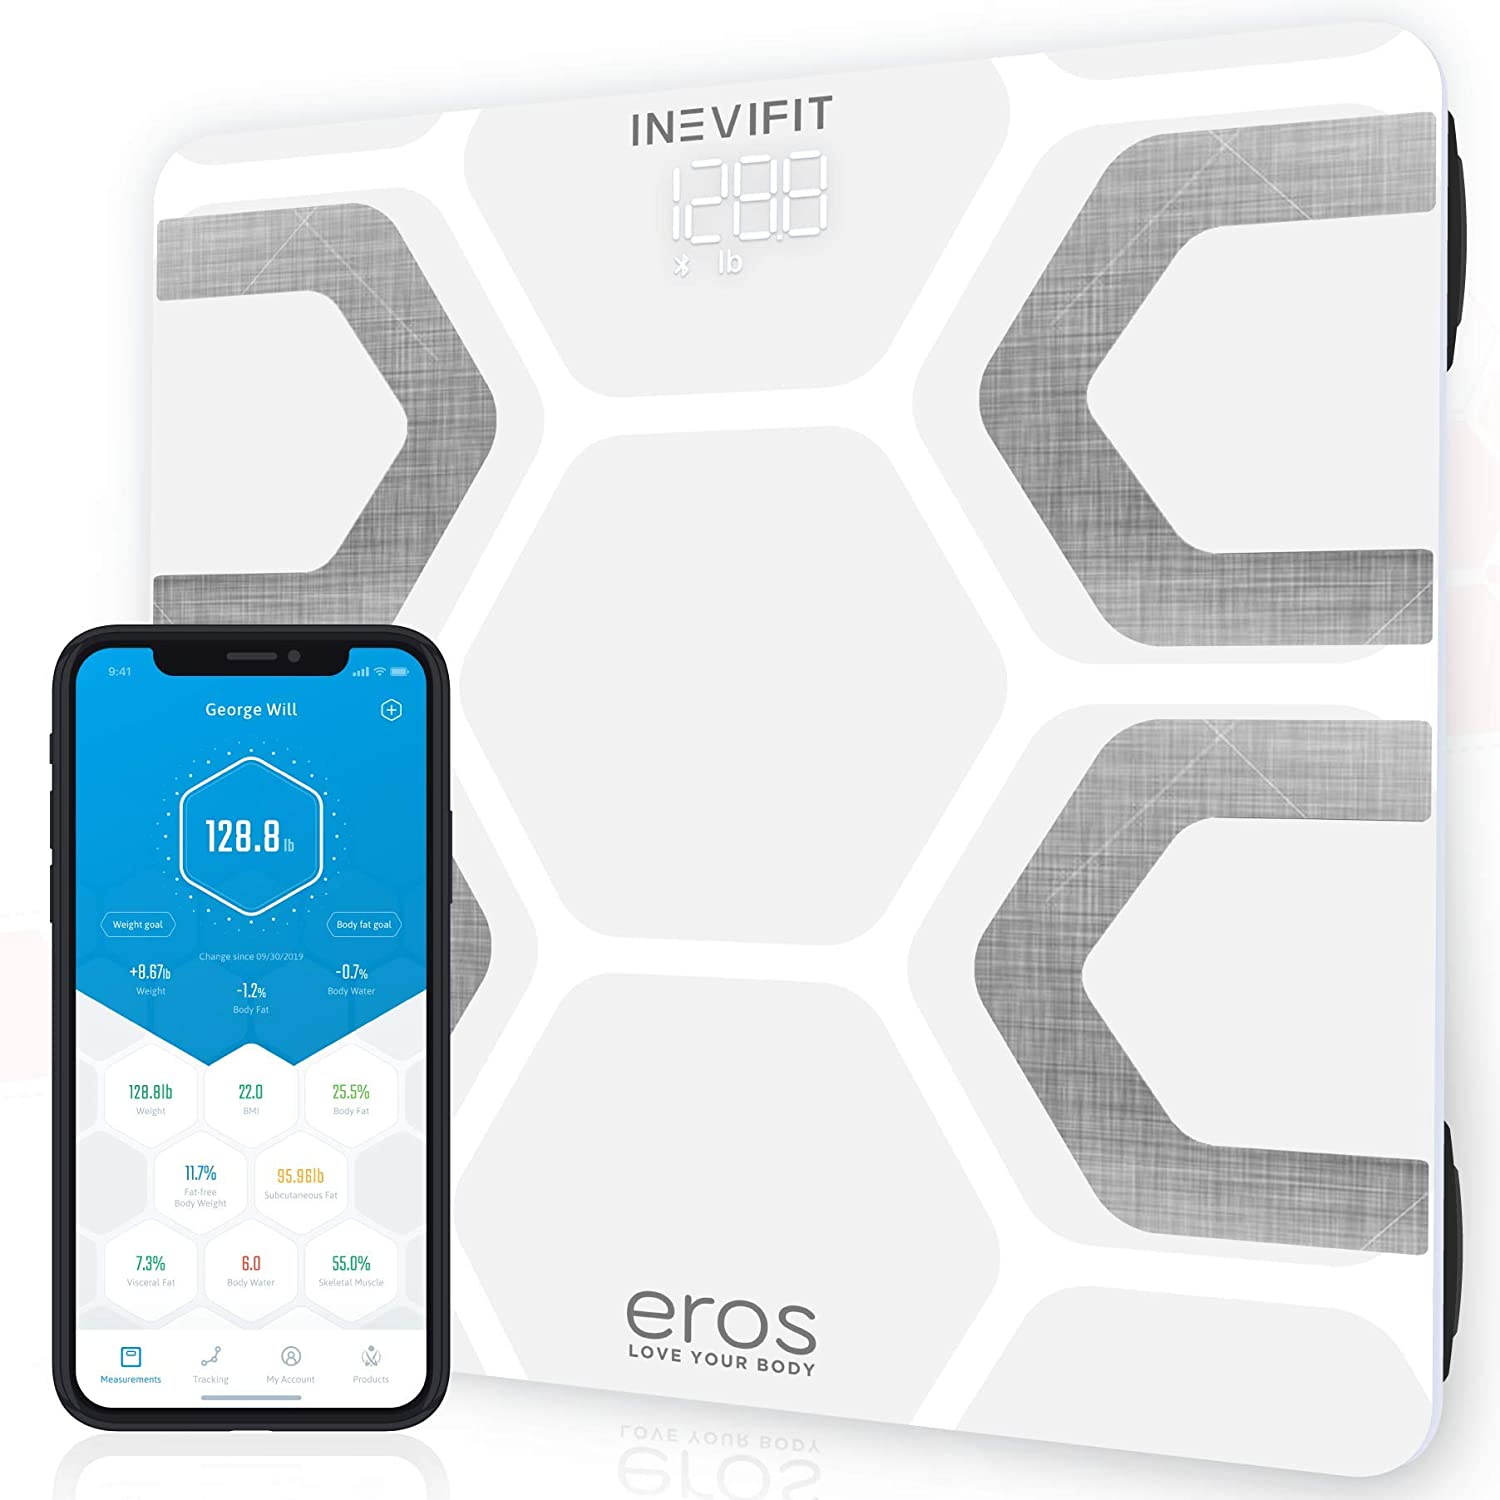 INEVIFIT EROS Bluetooth Body Fat Scale Smart BMI Highly Accurate Digital Bathroom Body Composition Analyzer with Wireless Smartphone APP 400 lbs 11.8 x 11.8 inch White